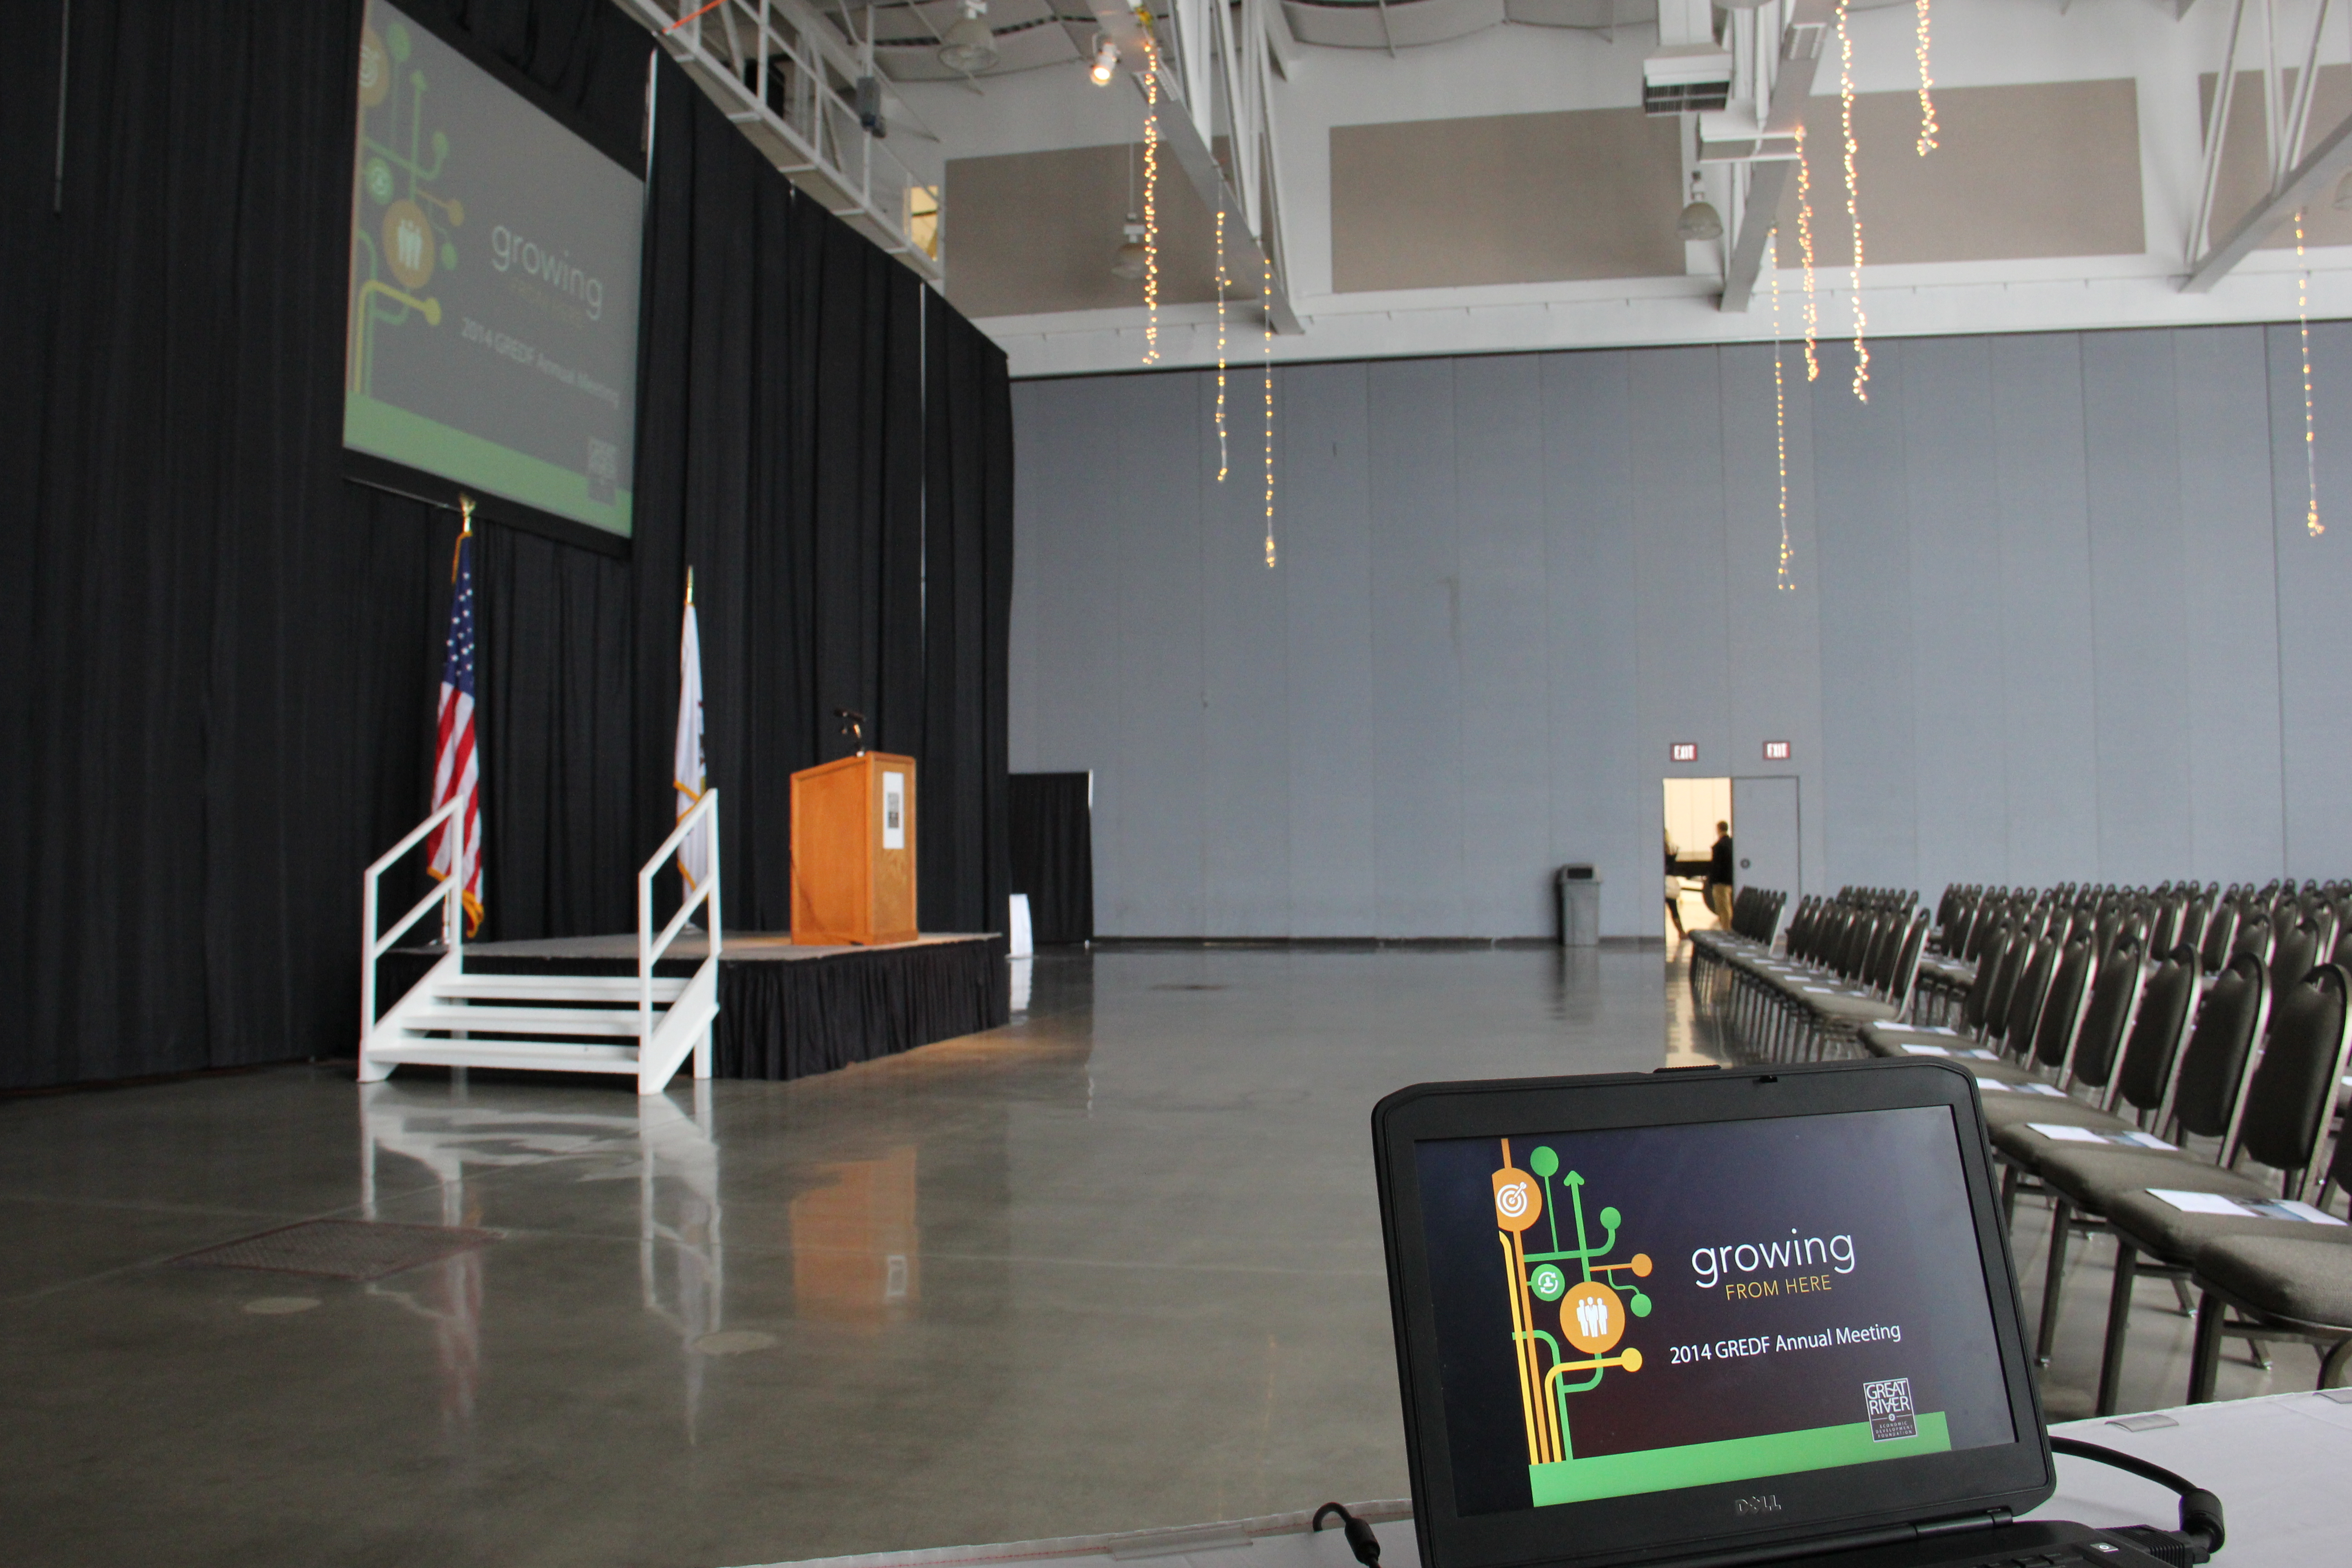 2014 Annual Meeting in Review